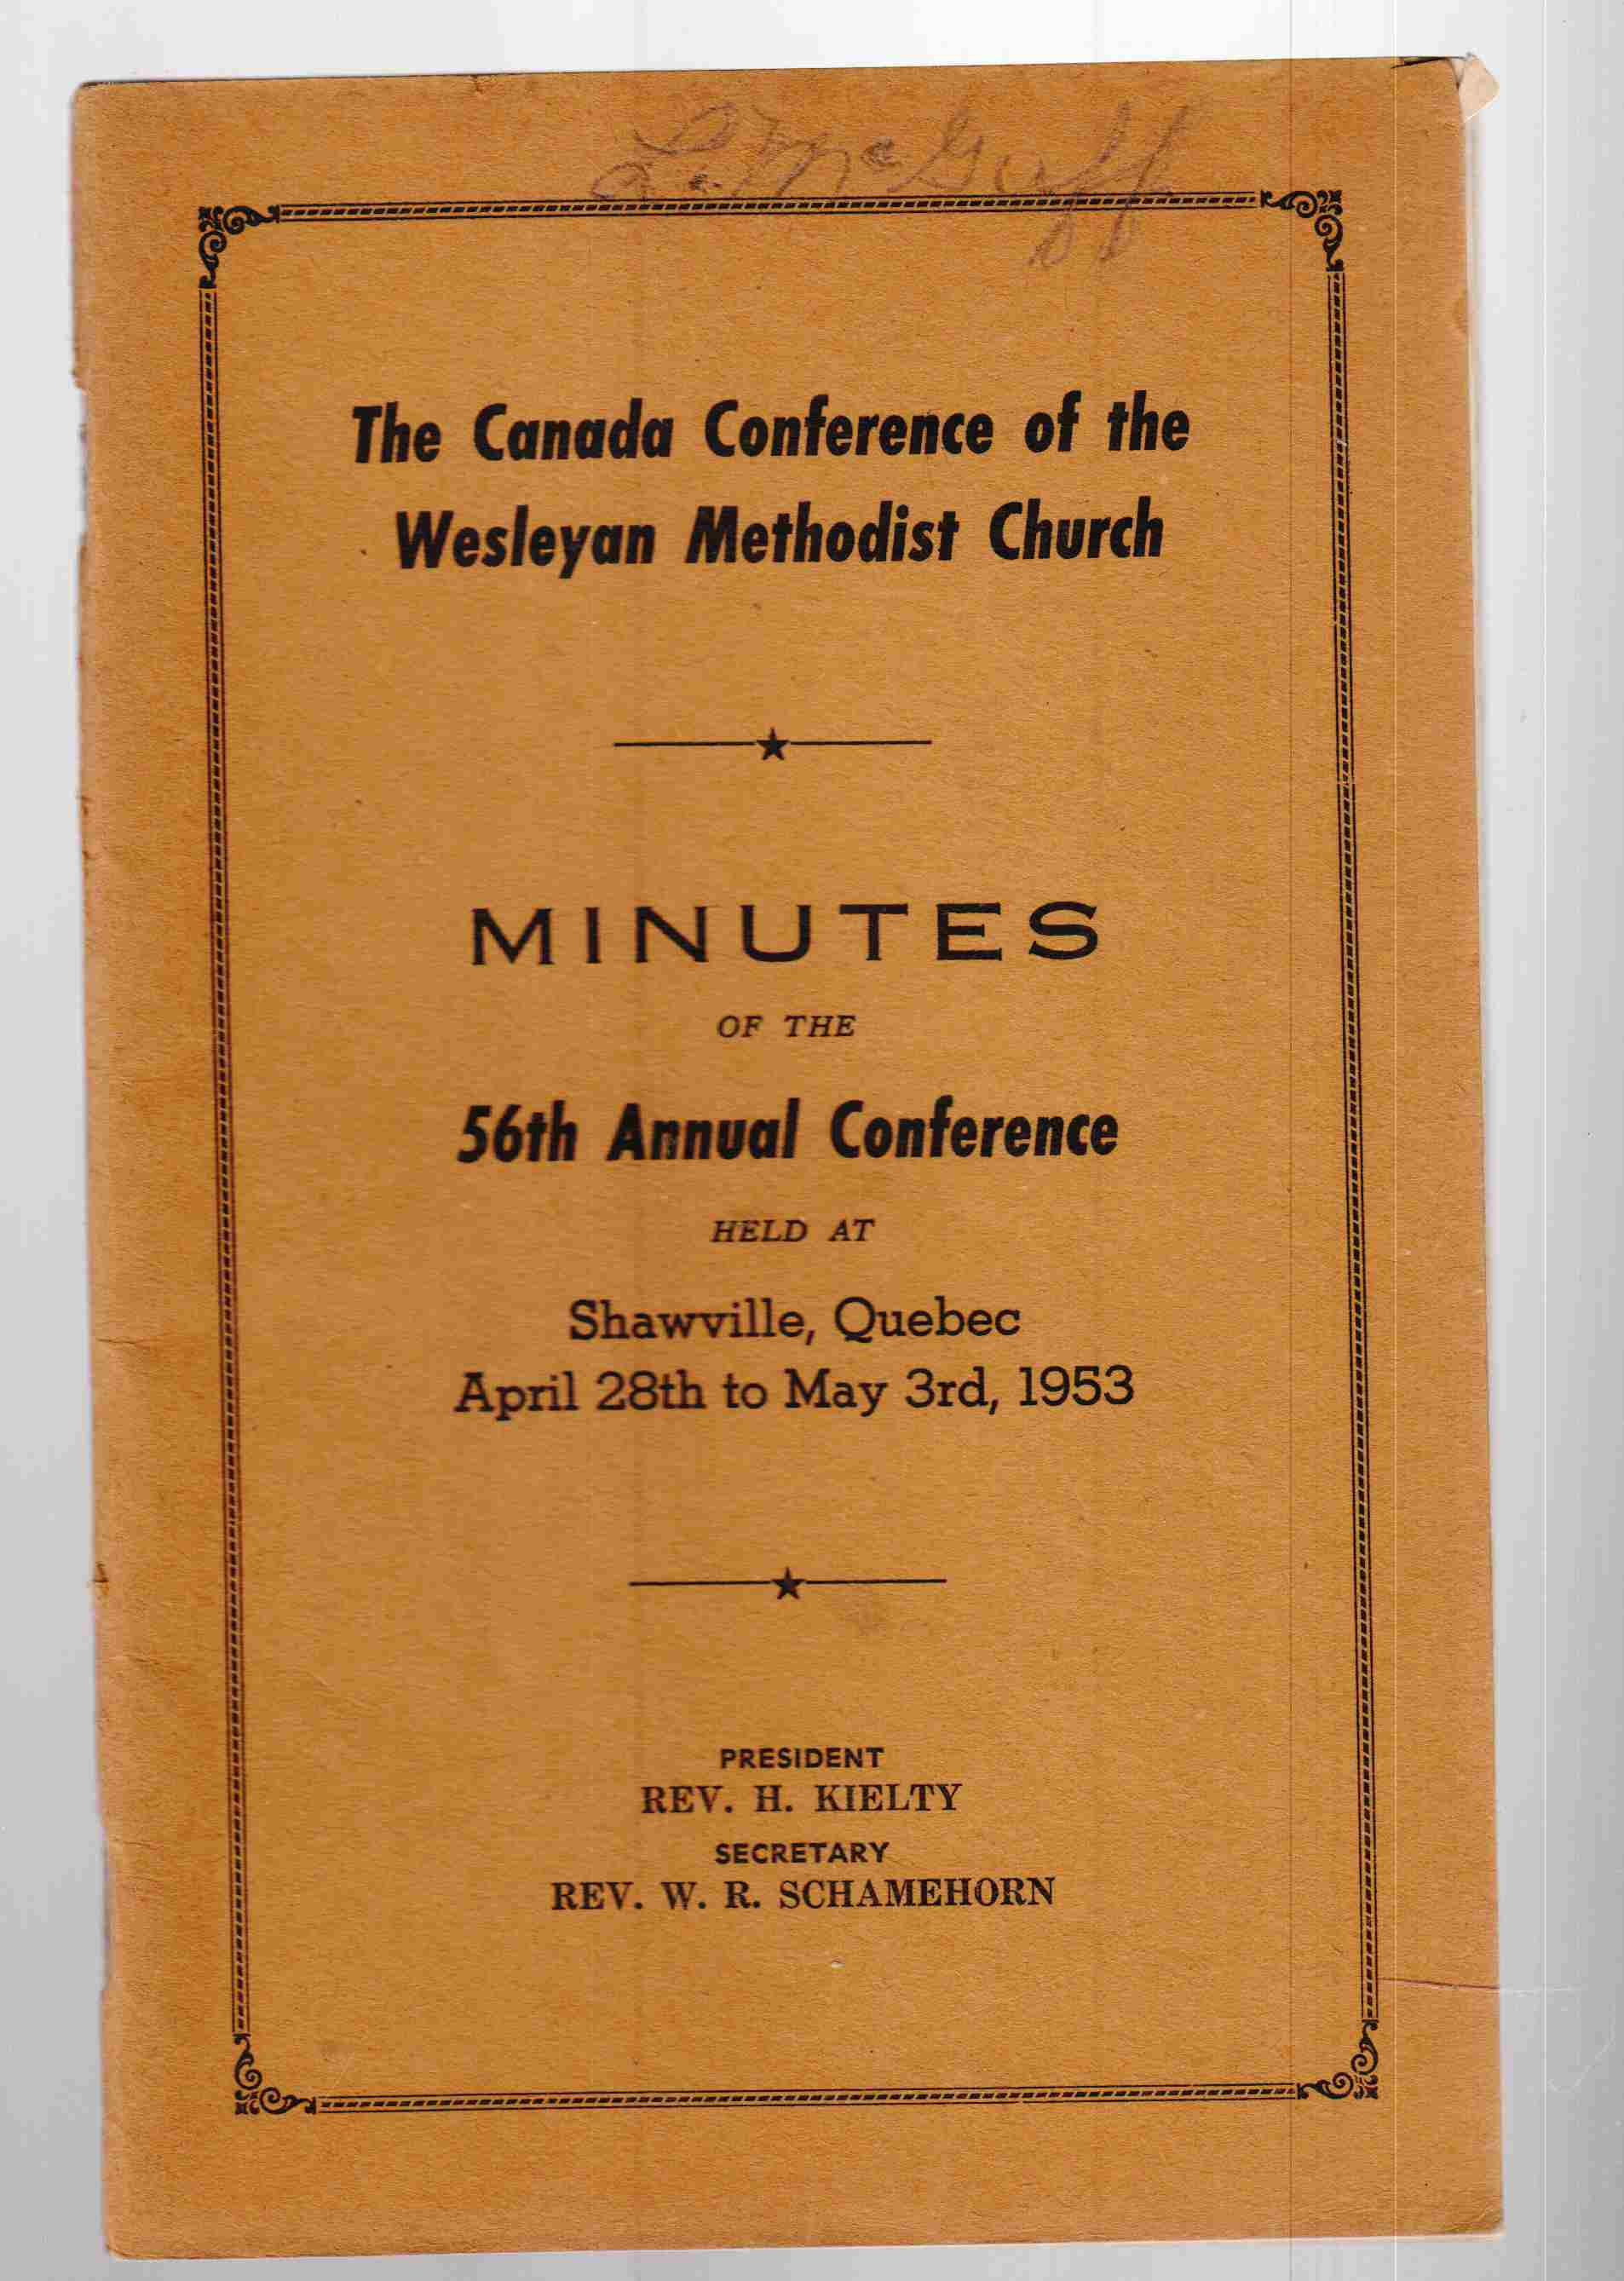 Image for The Canada Conference of the Wesleyan Methodist Church Minutes of the 56th Annual Conference Held At Shawville, Quebec April 28th to May 3rd, 1953